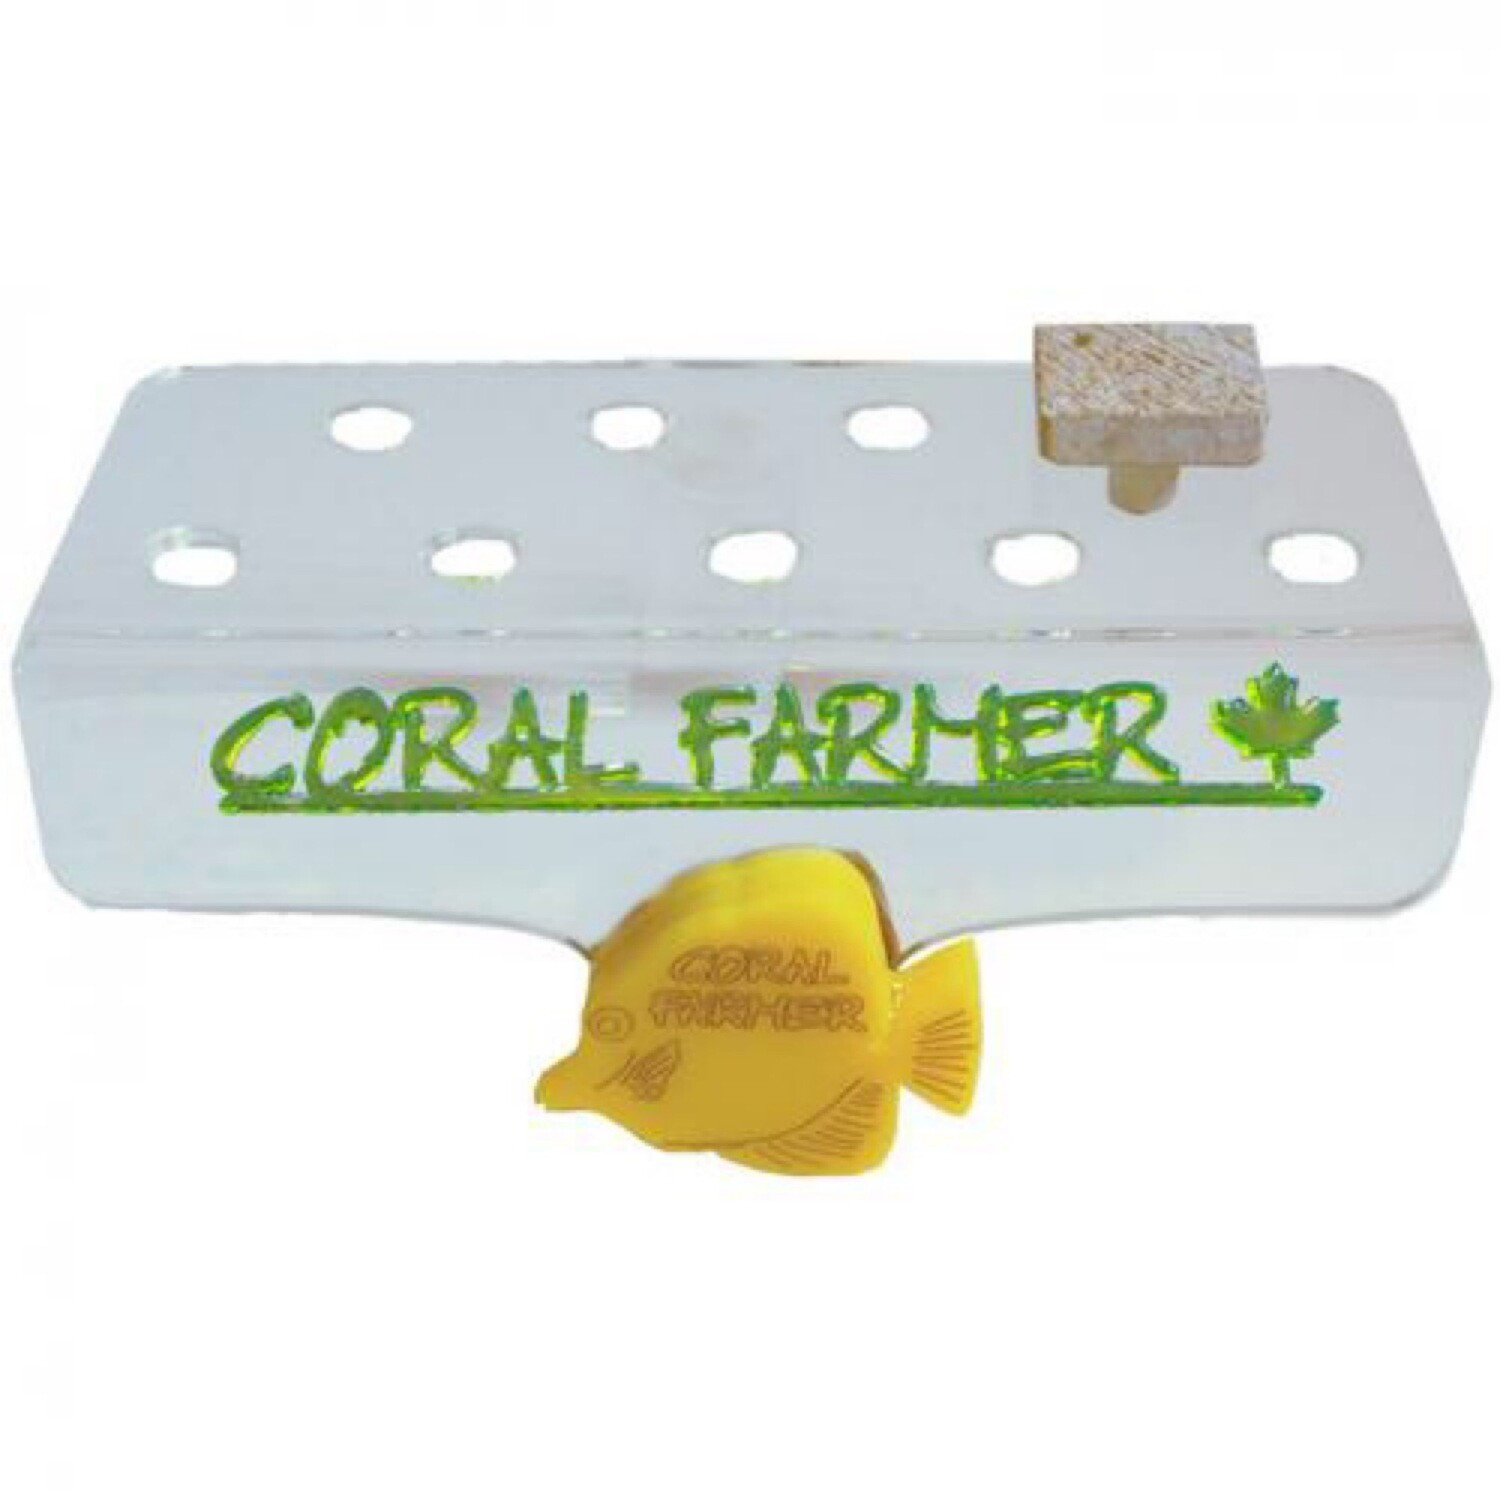 Coral Farmer 9 Hole Frag Rack - For Glass or Acrylic up to 3/8 in.